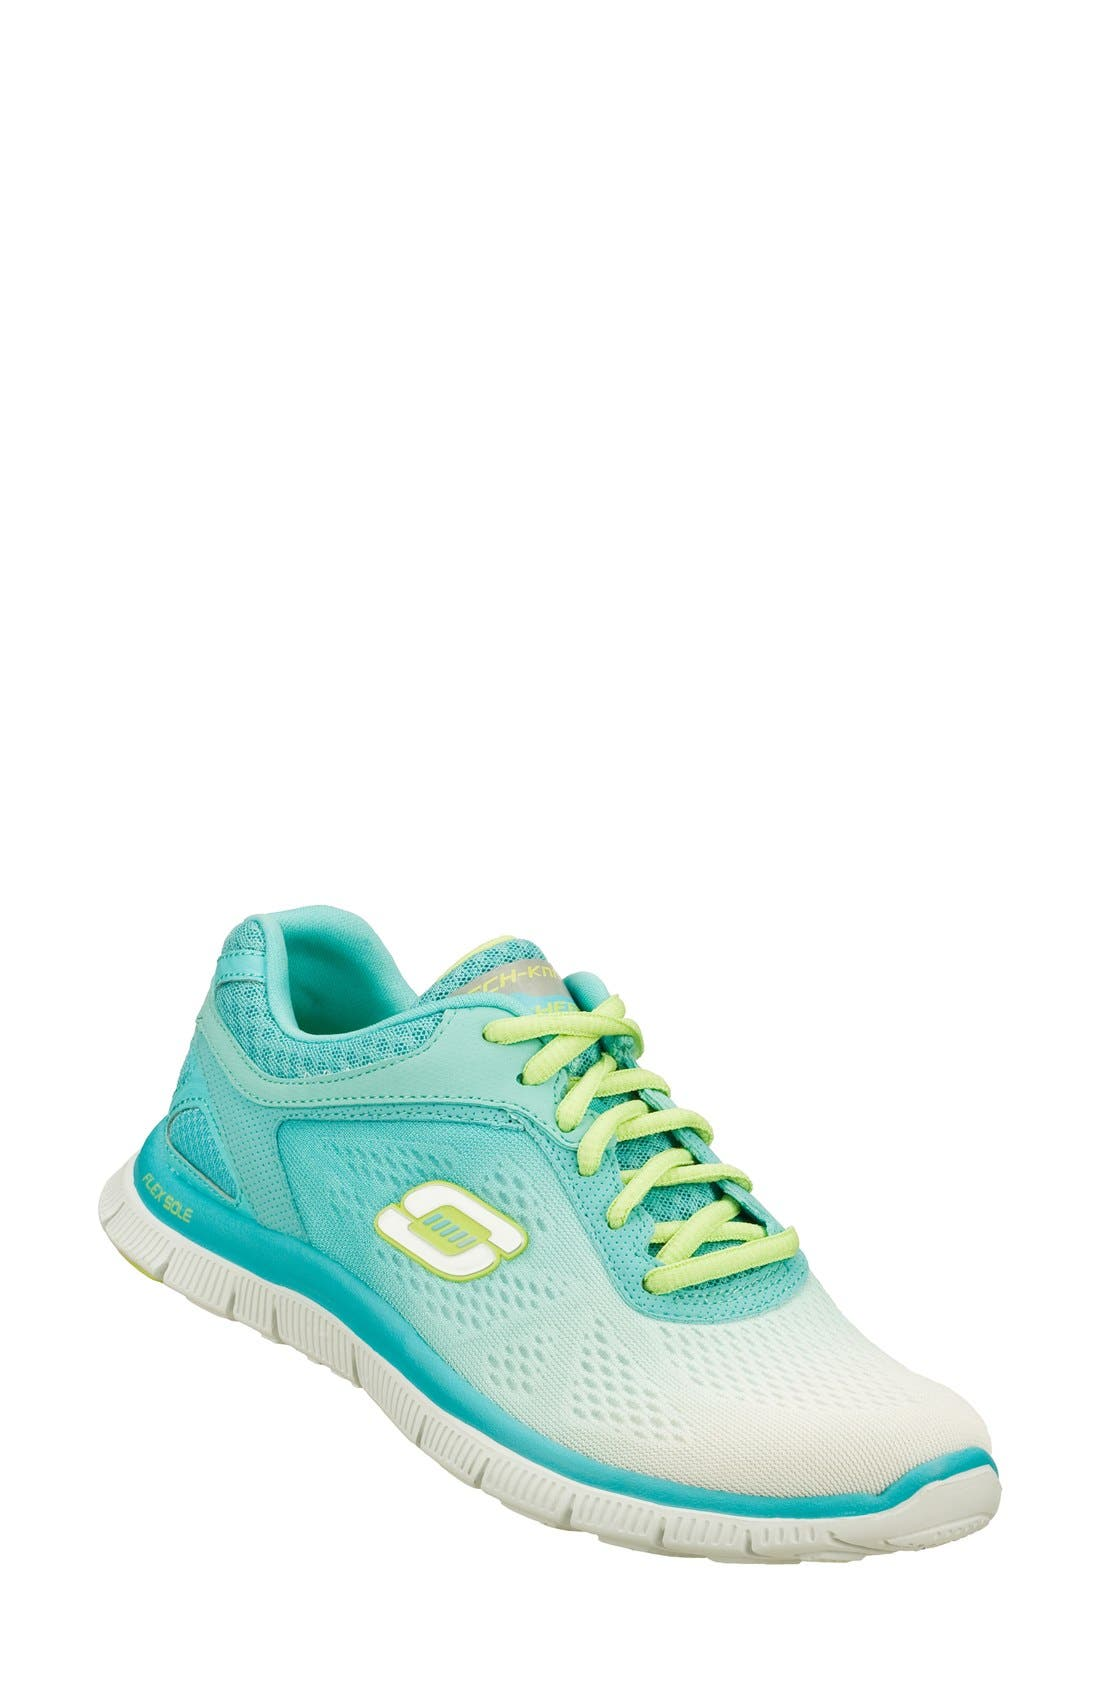 Alternate Image 1 Selected - SKECHERS 'Flex Appeal - Style Icon' Walking Shoe (Women)